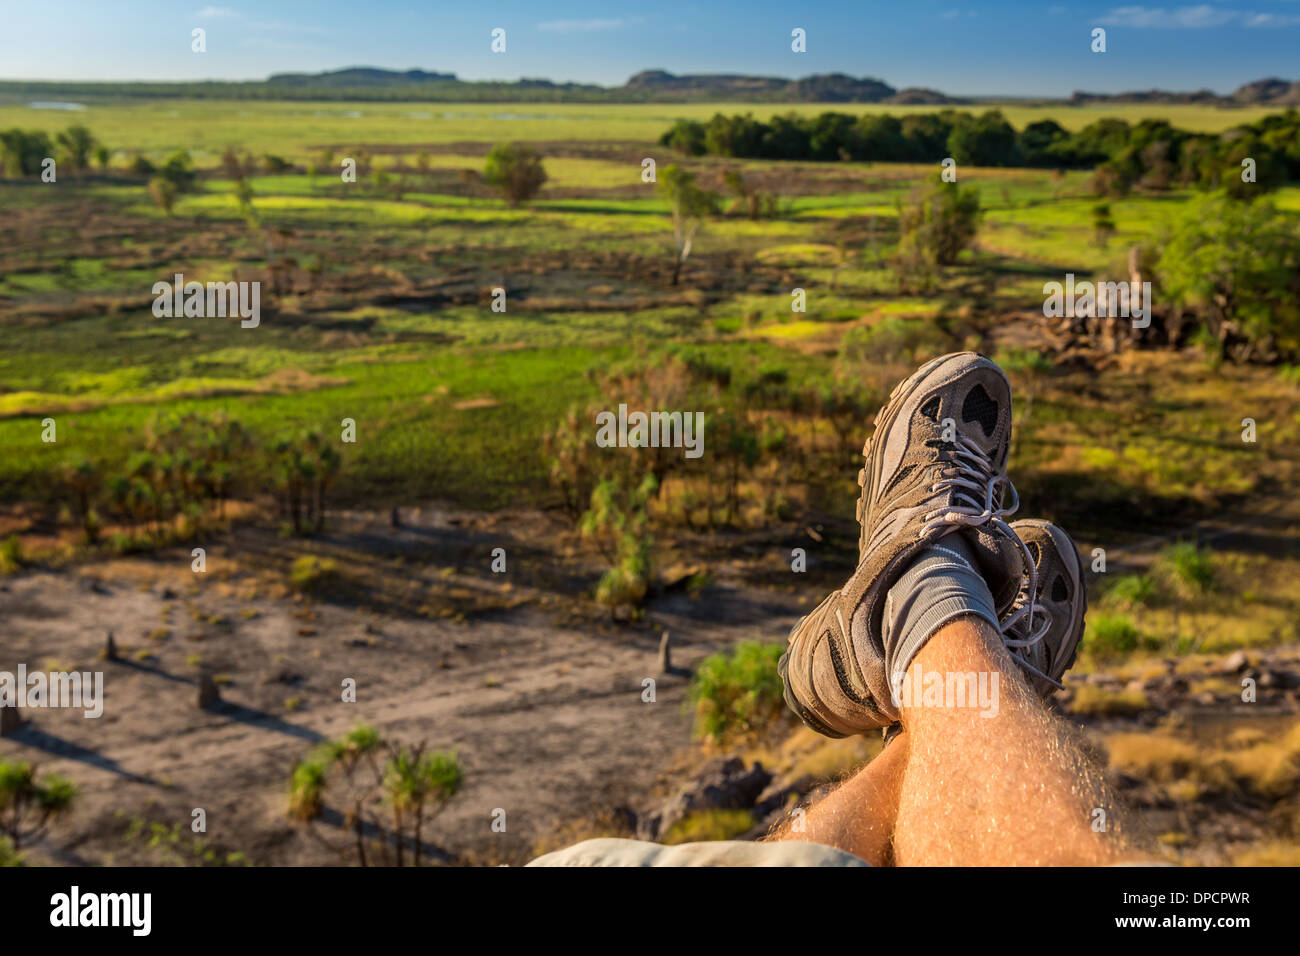 Man's legs with view of Nadab floodplain, Nadab lookout, Ubirr, East Alligator region, Northern Territory, Australia - Stock Image